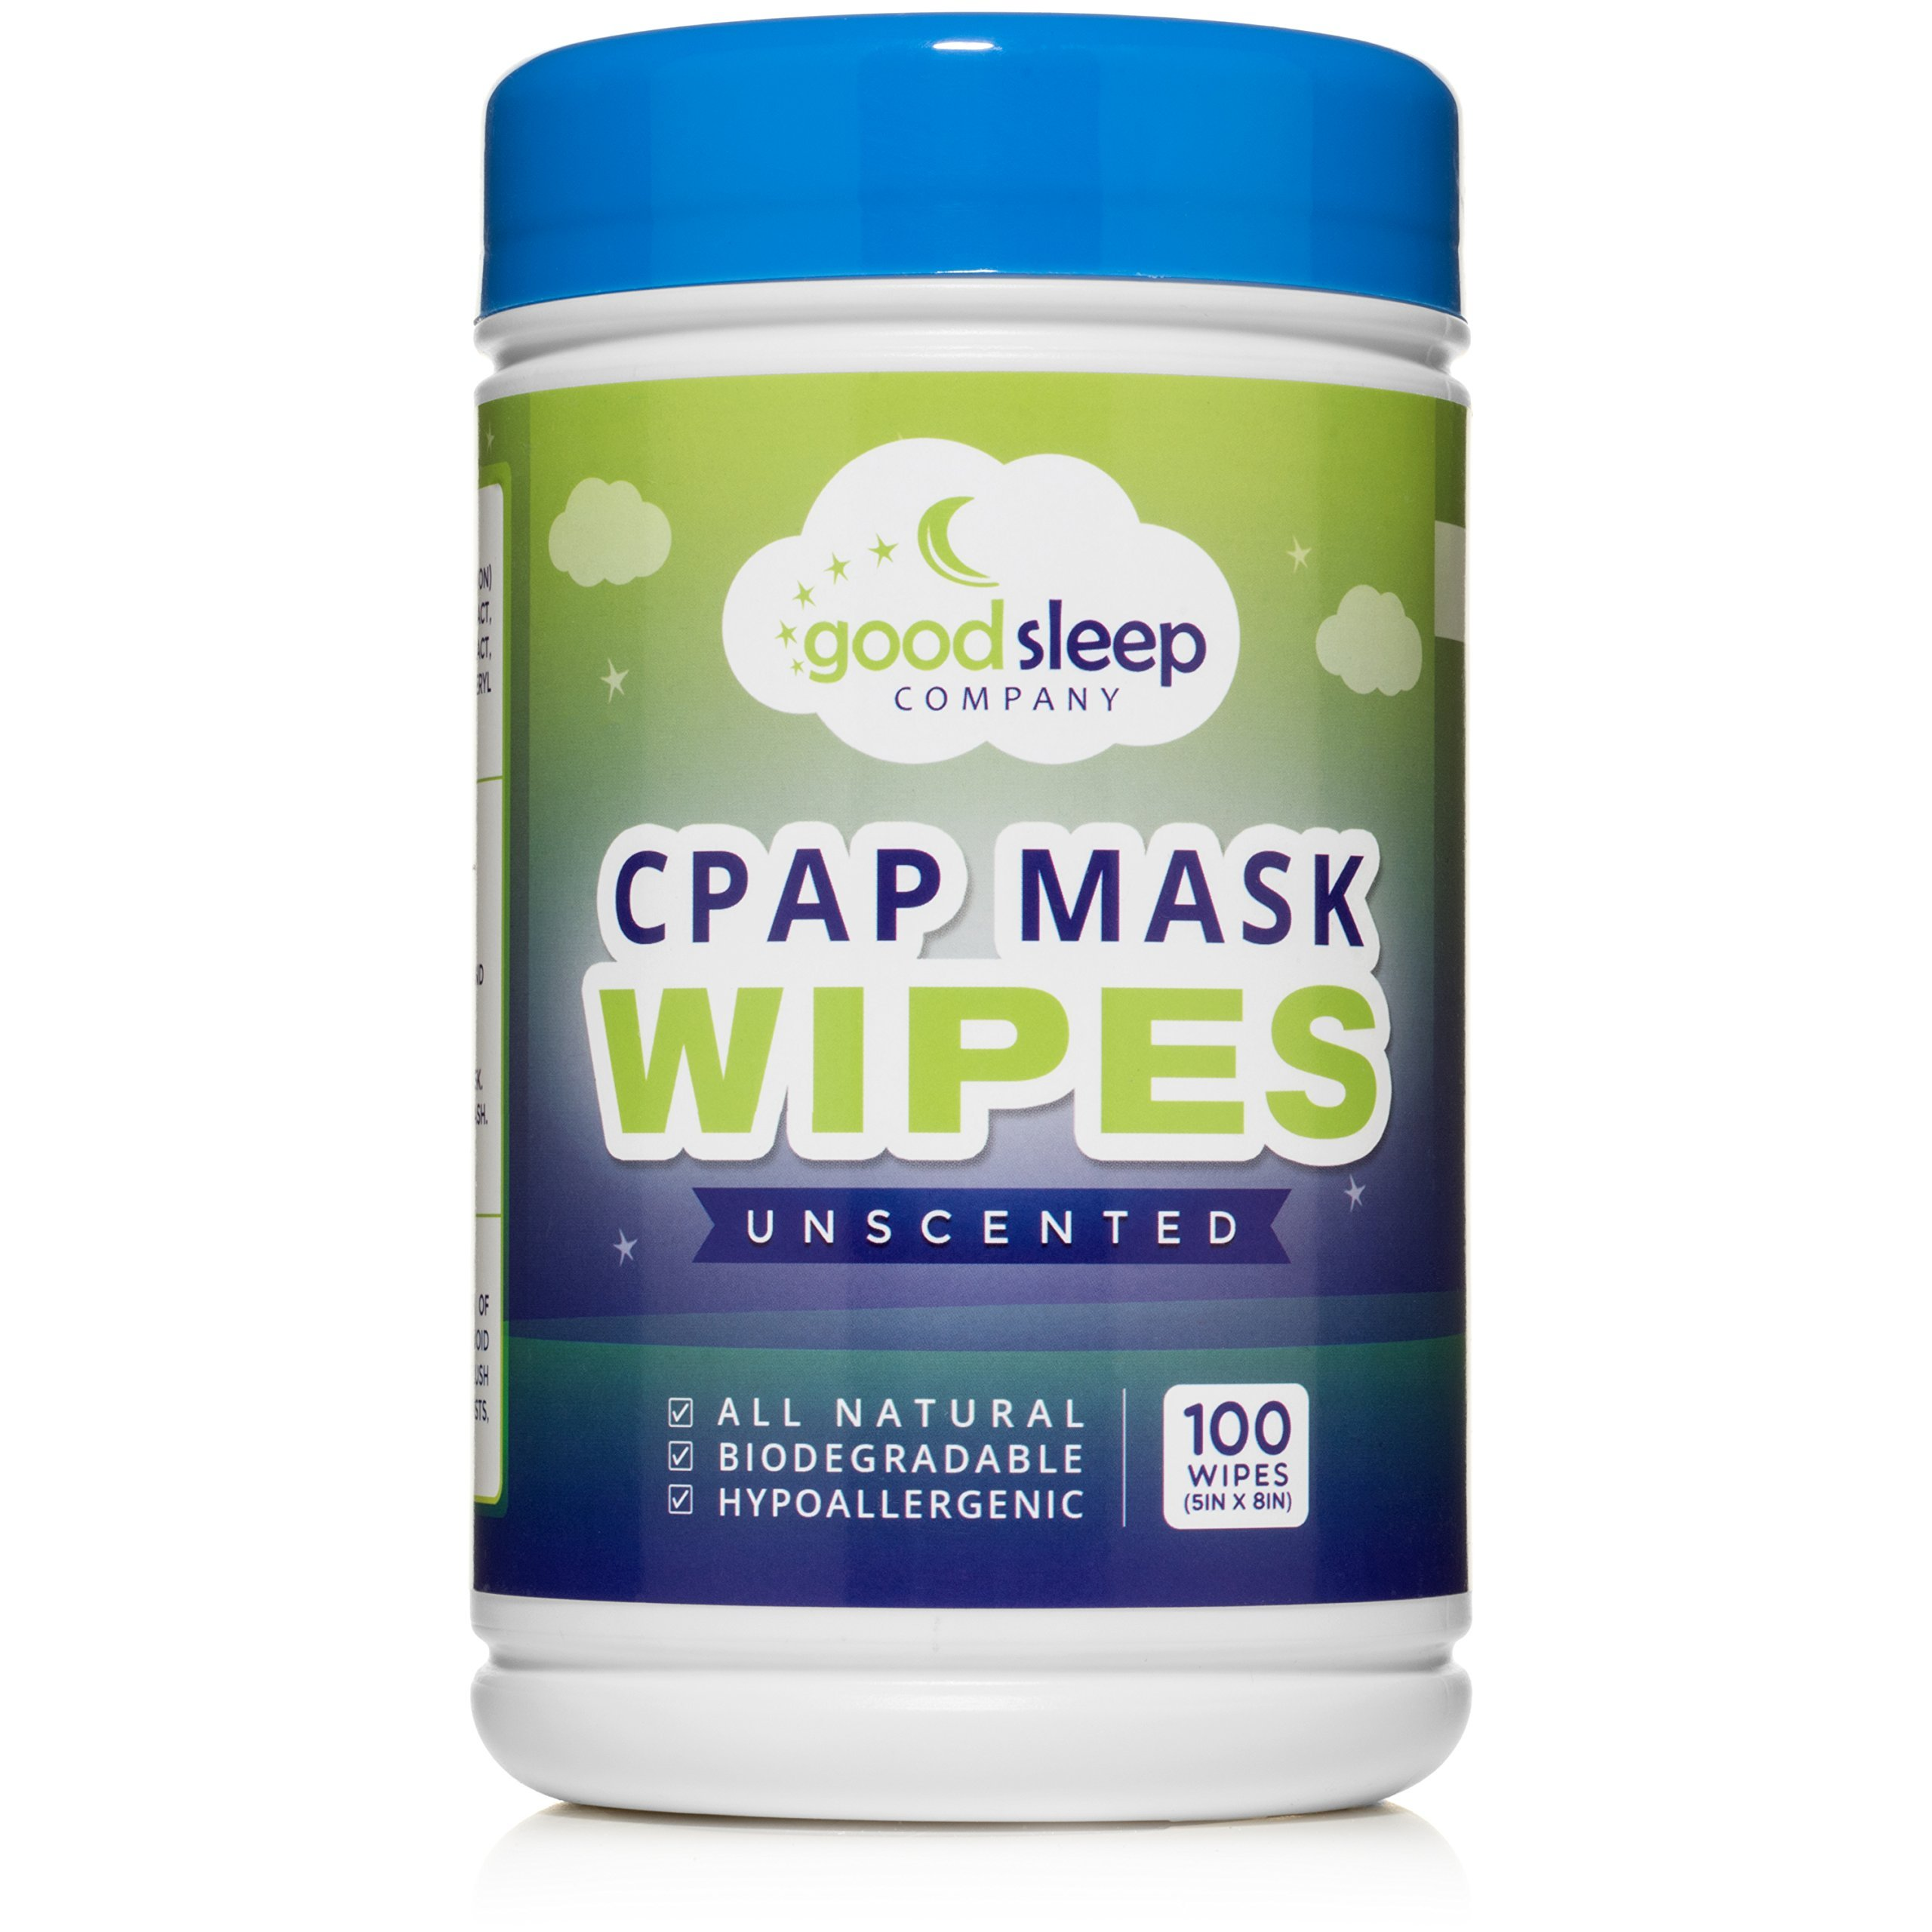 CPAP Mask Cleaning and Sanitizing Wipes, 100 Pack Unscented - Natural Formula, 100% Cotton and Biodegradable by GoodSleep Company